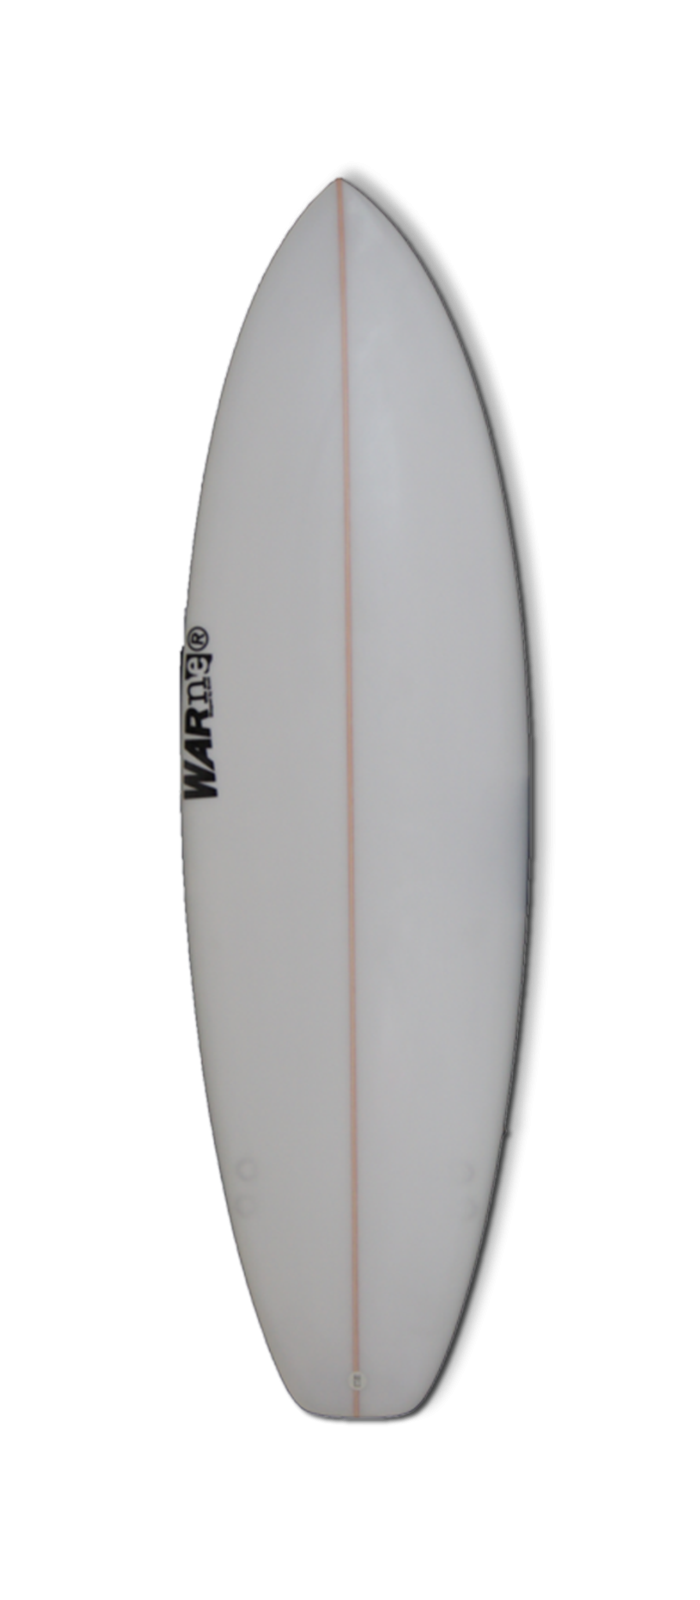 SEA BOP surfboard model